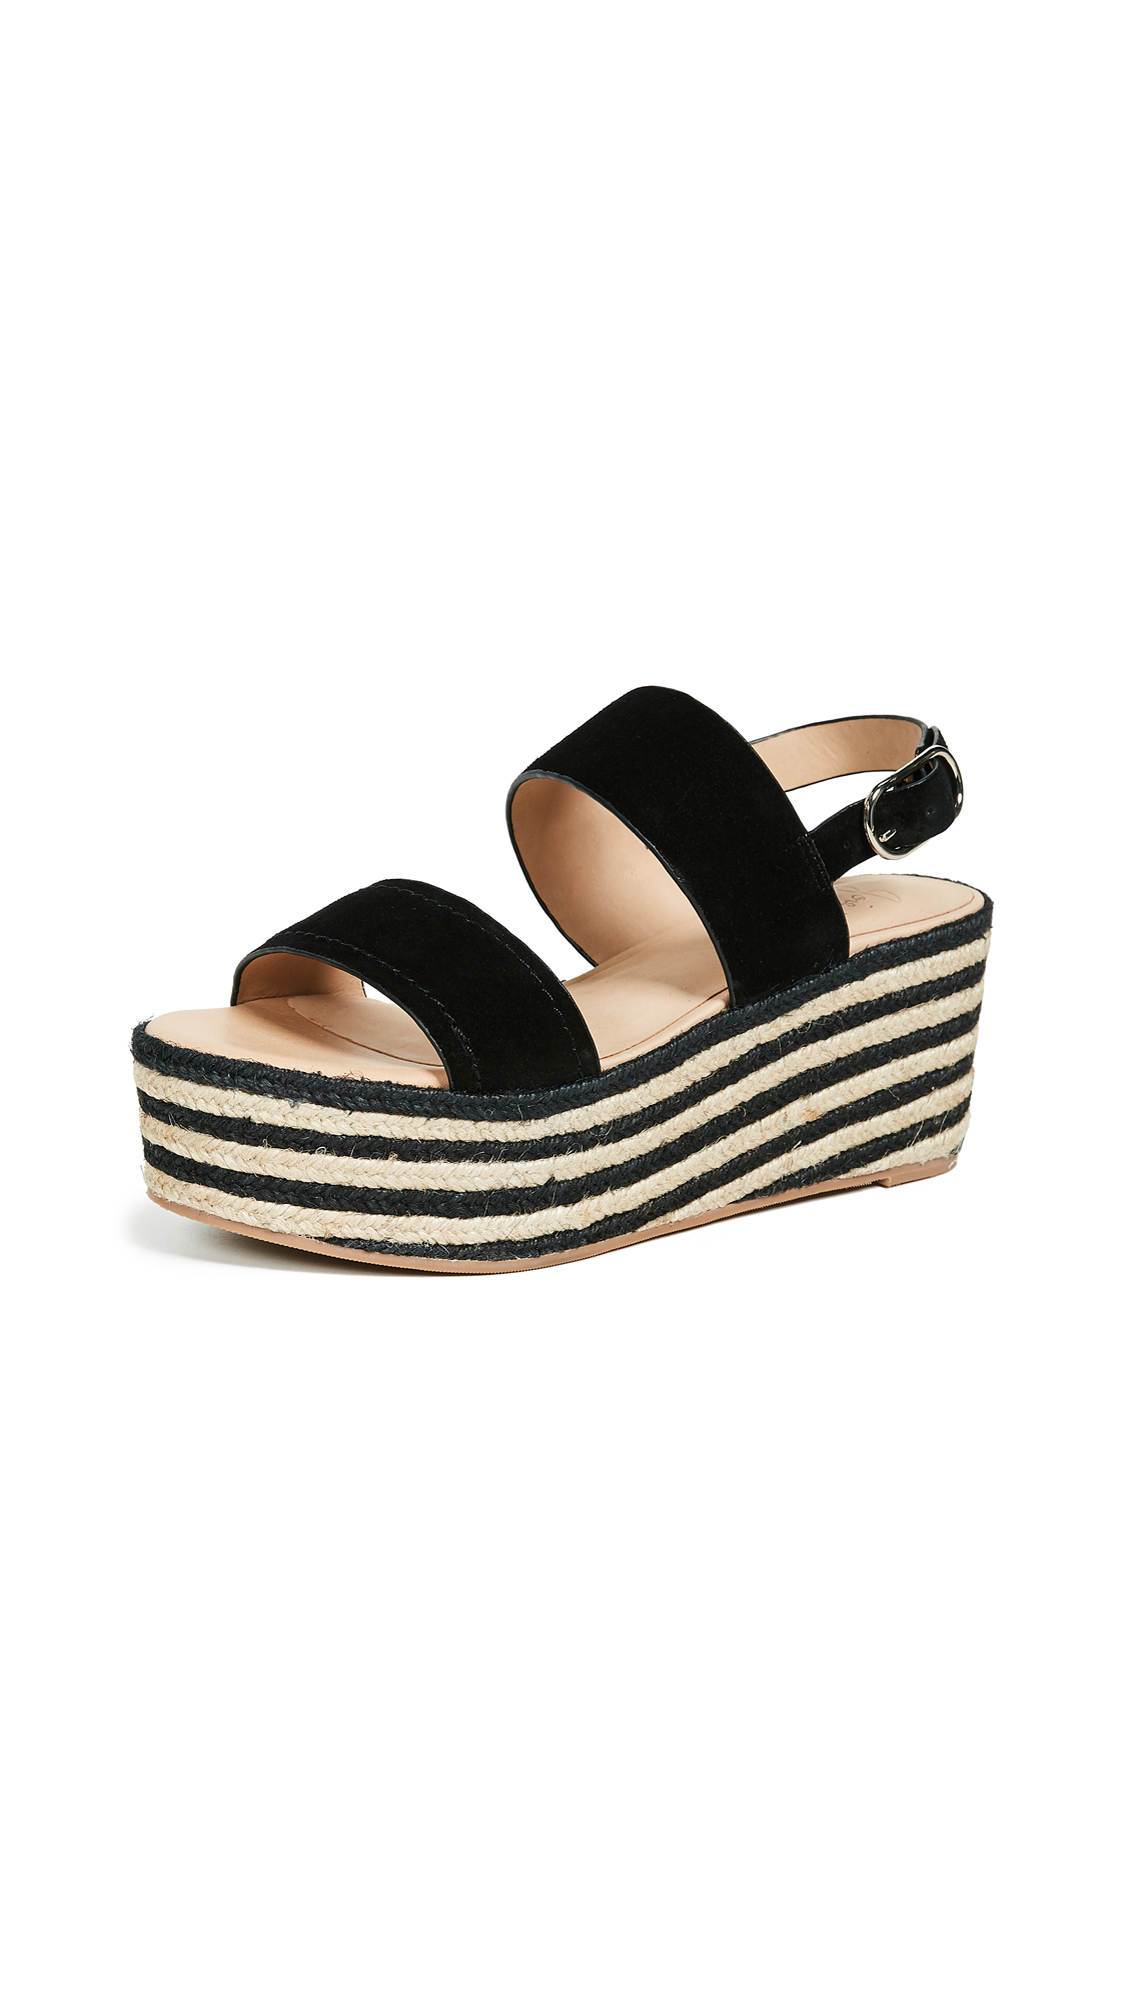 Joie Galicia Two Band Wedges - Nero